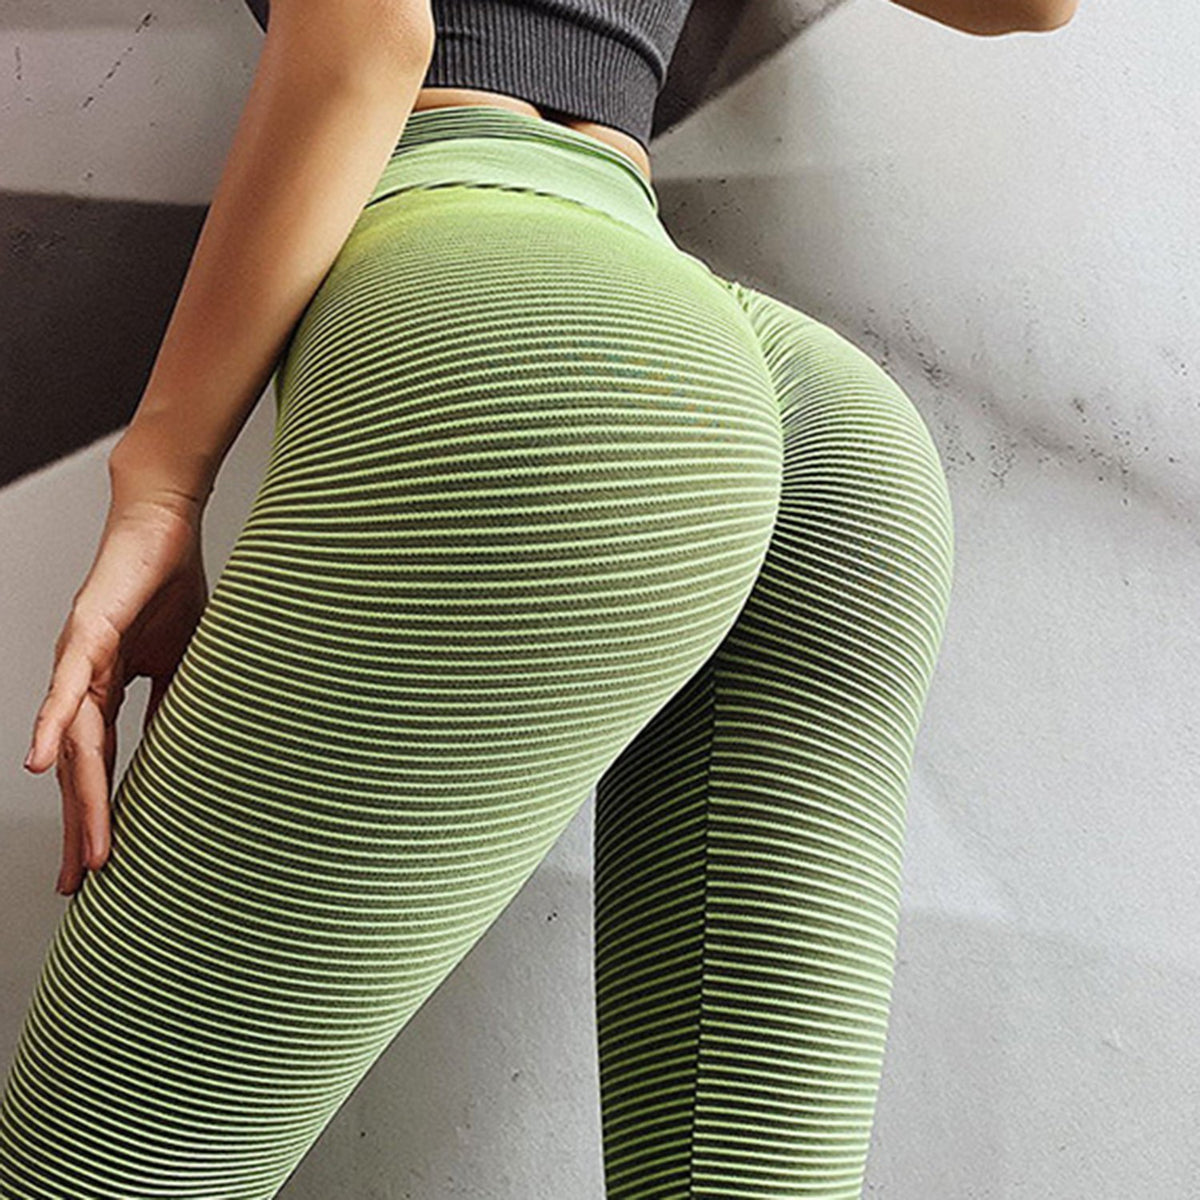 Textured Butt Lift peach butt Fitness Pants Yoga Pants - worthtryit.com